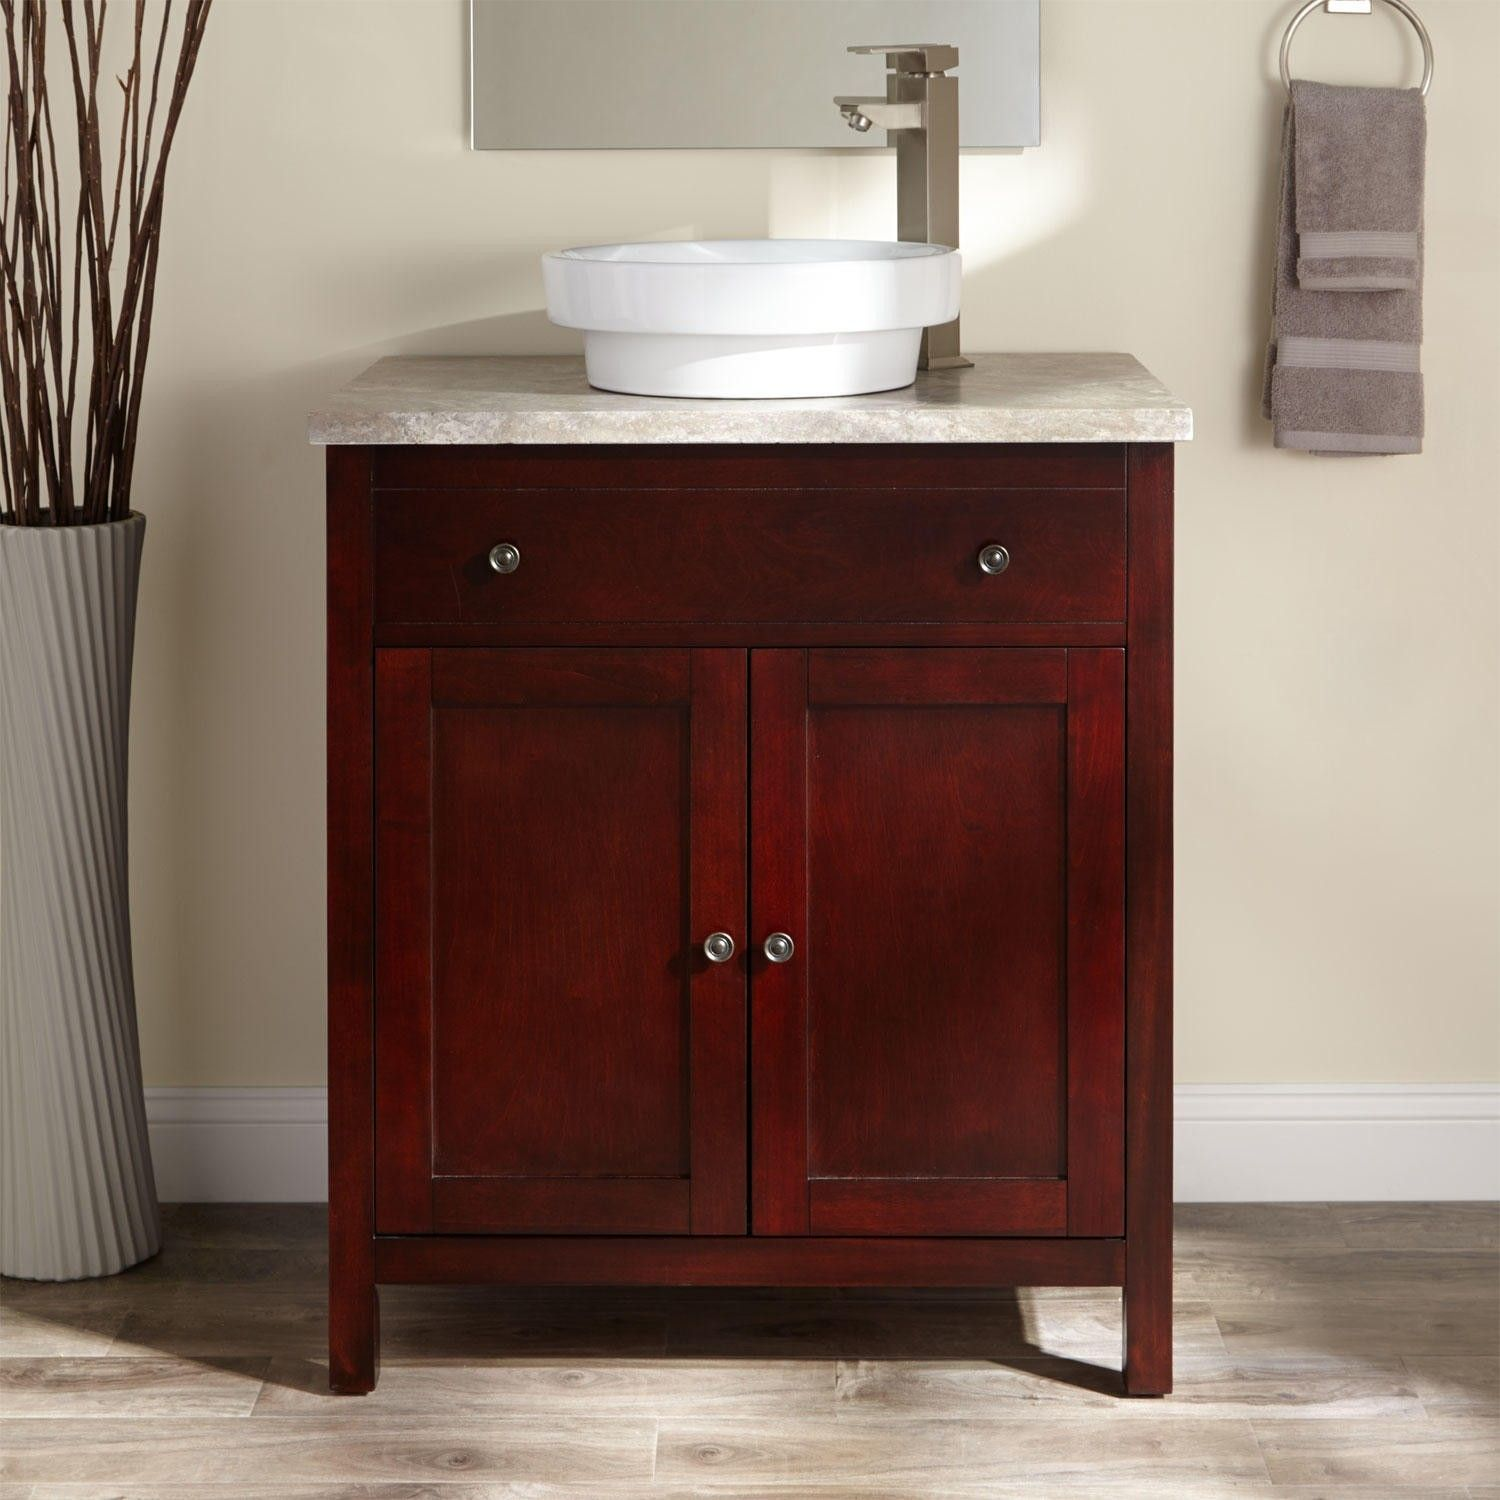 Classic Wooden Bathroom Vanity In Cherry Glazed With Square Legs .